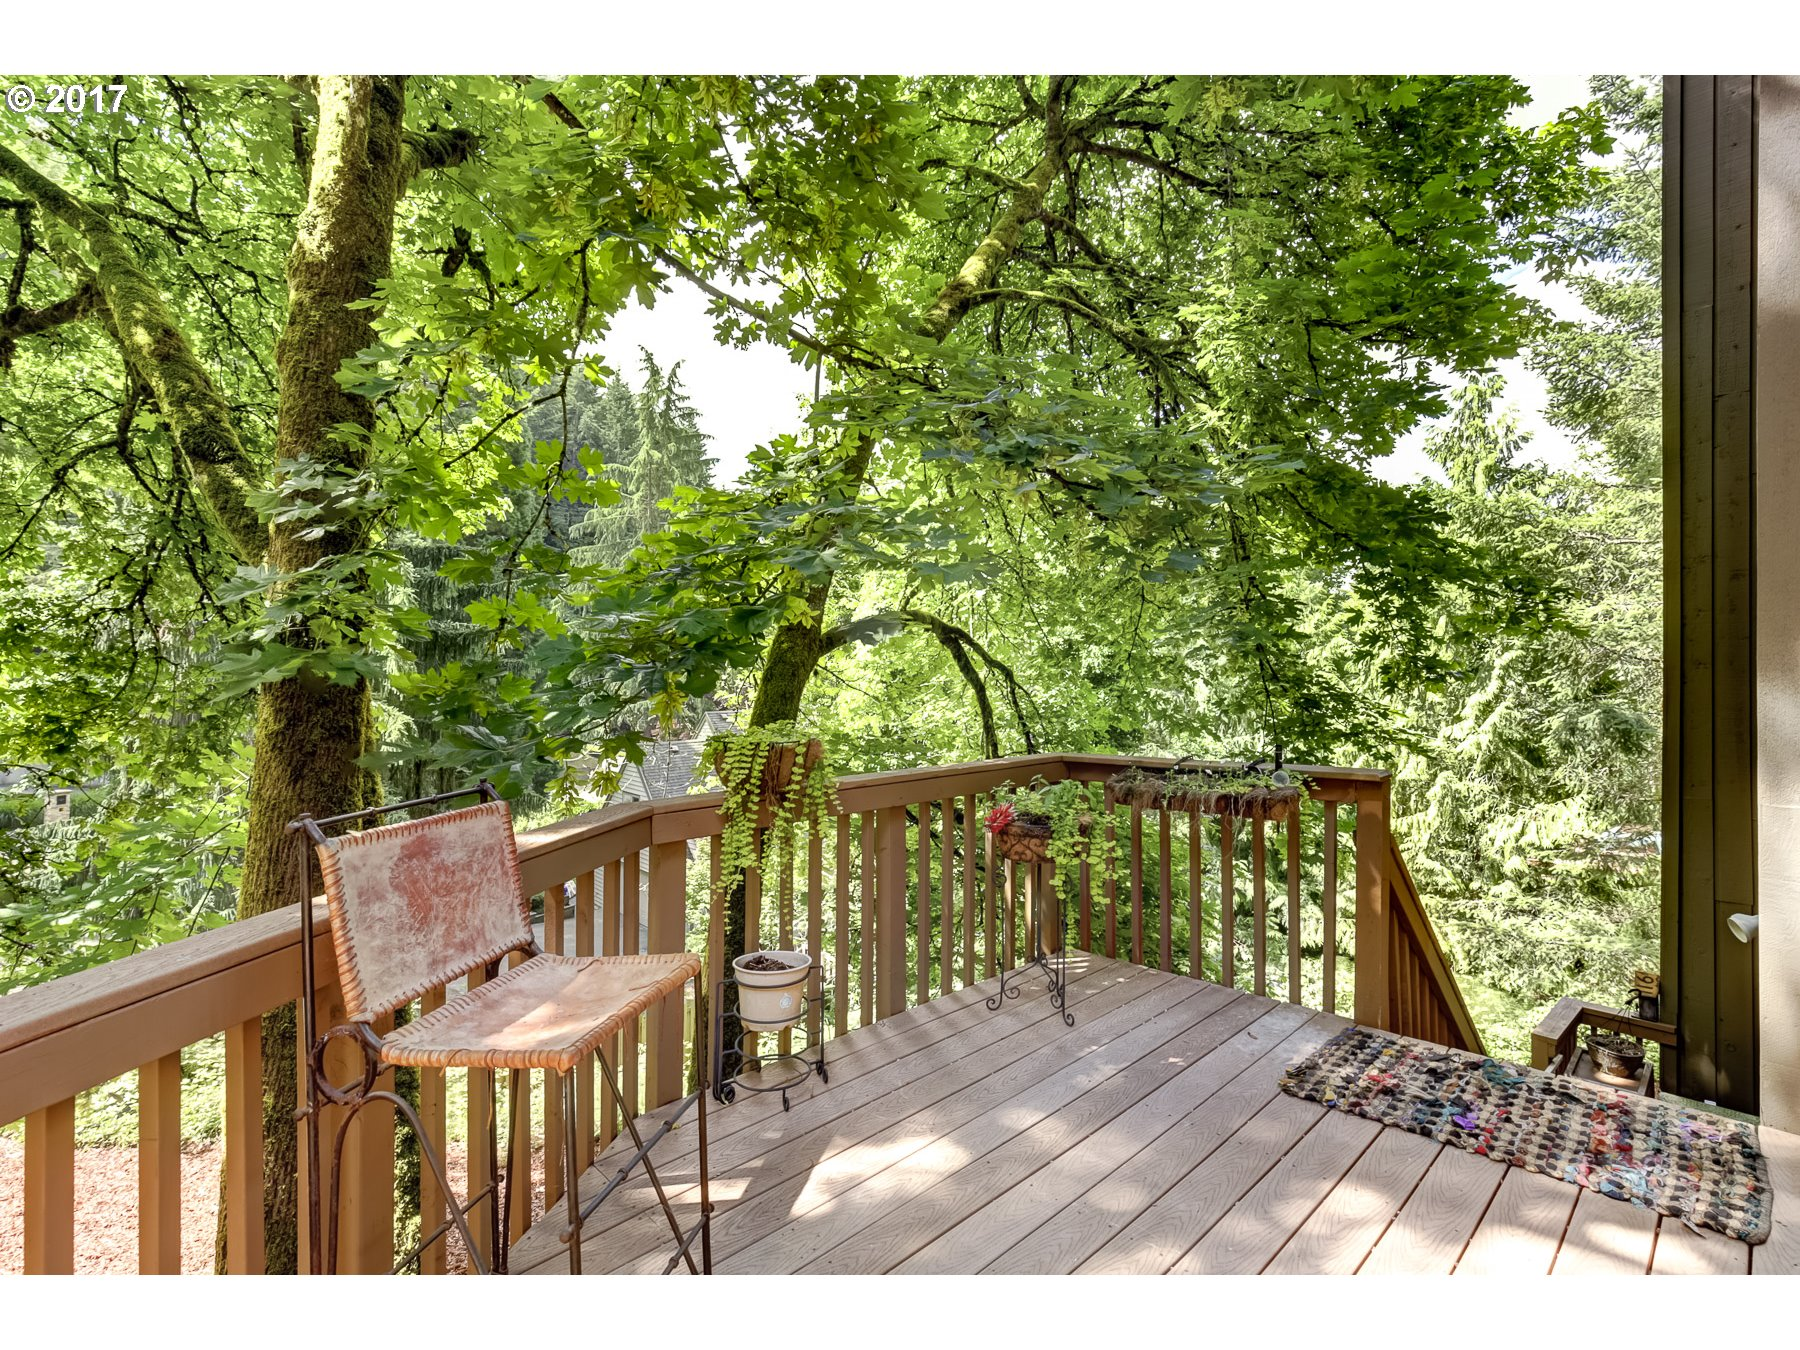 2814 OVERLOOK DR Lake Oswego, OR 97034 - MLS #: 17055568